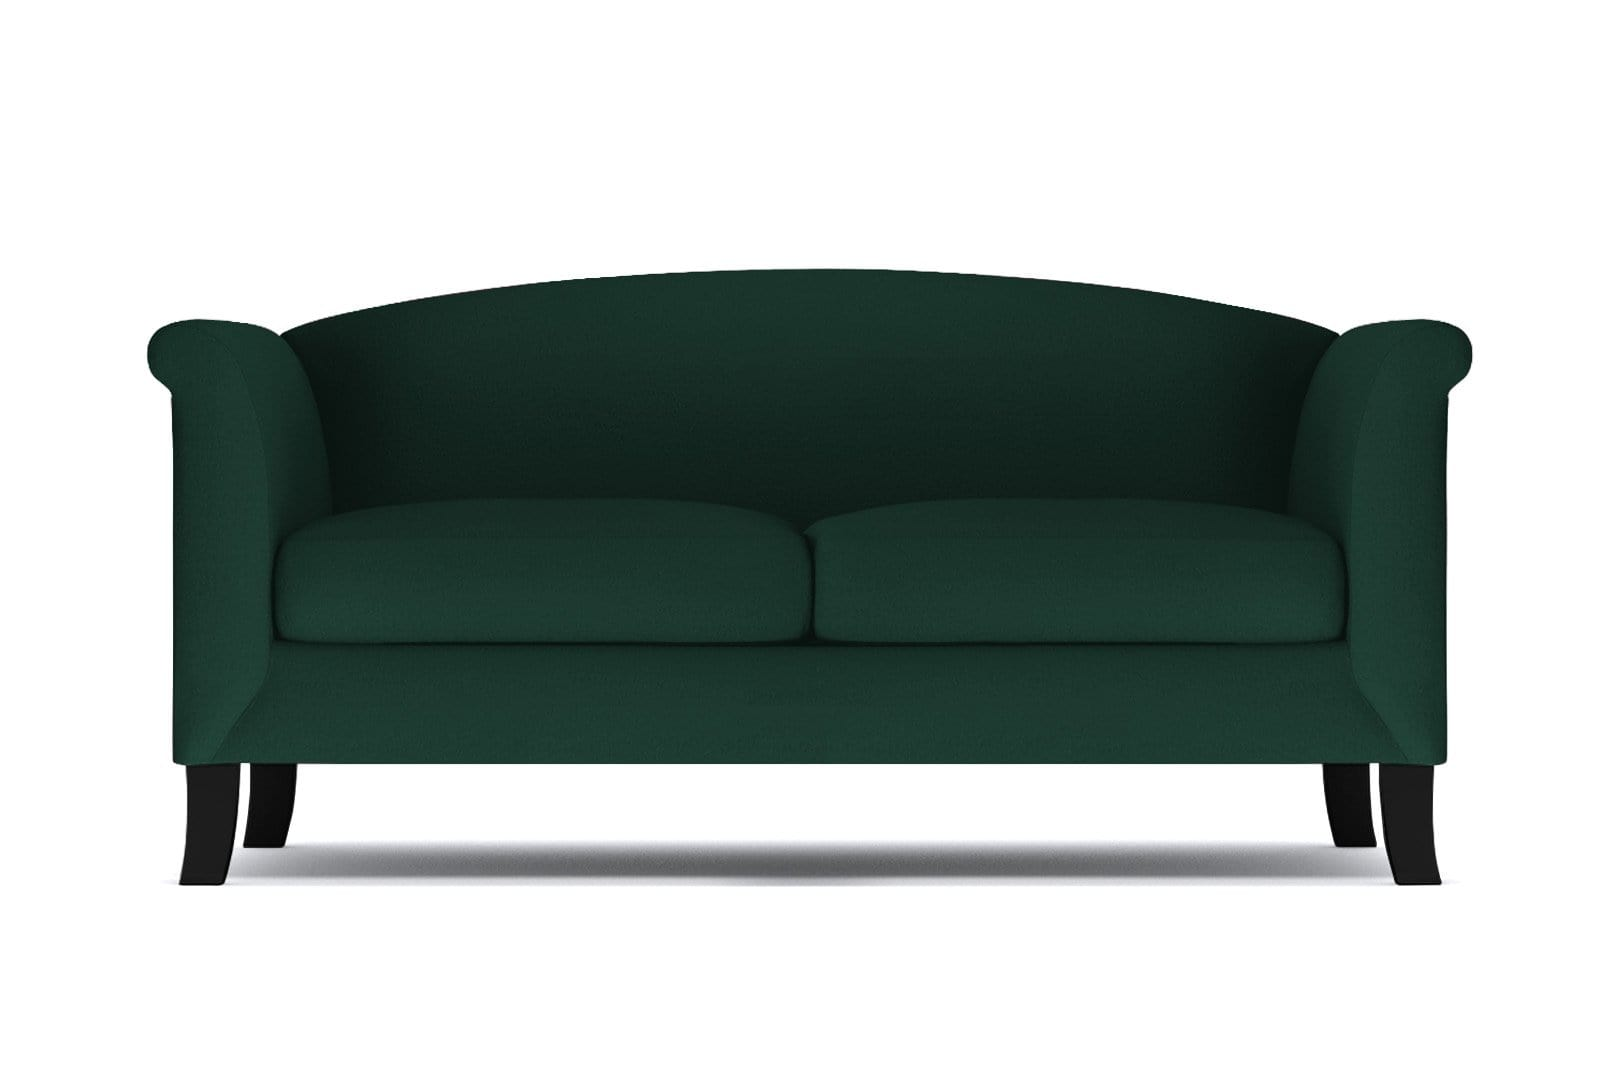 Albright_Apartment_Size_Sofa__Dark_Green_Velvet___Small_Space_Modern_Couch_Made_in_the_USA__Sold_by_Apt2B